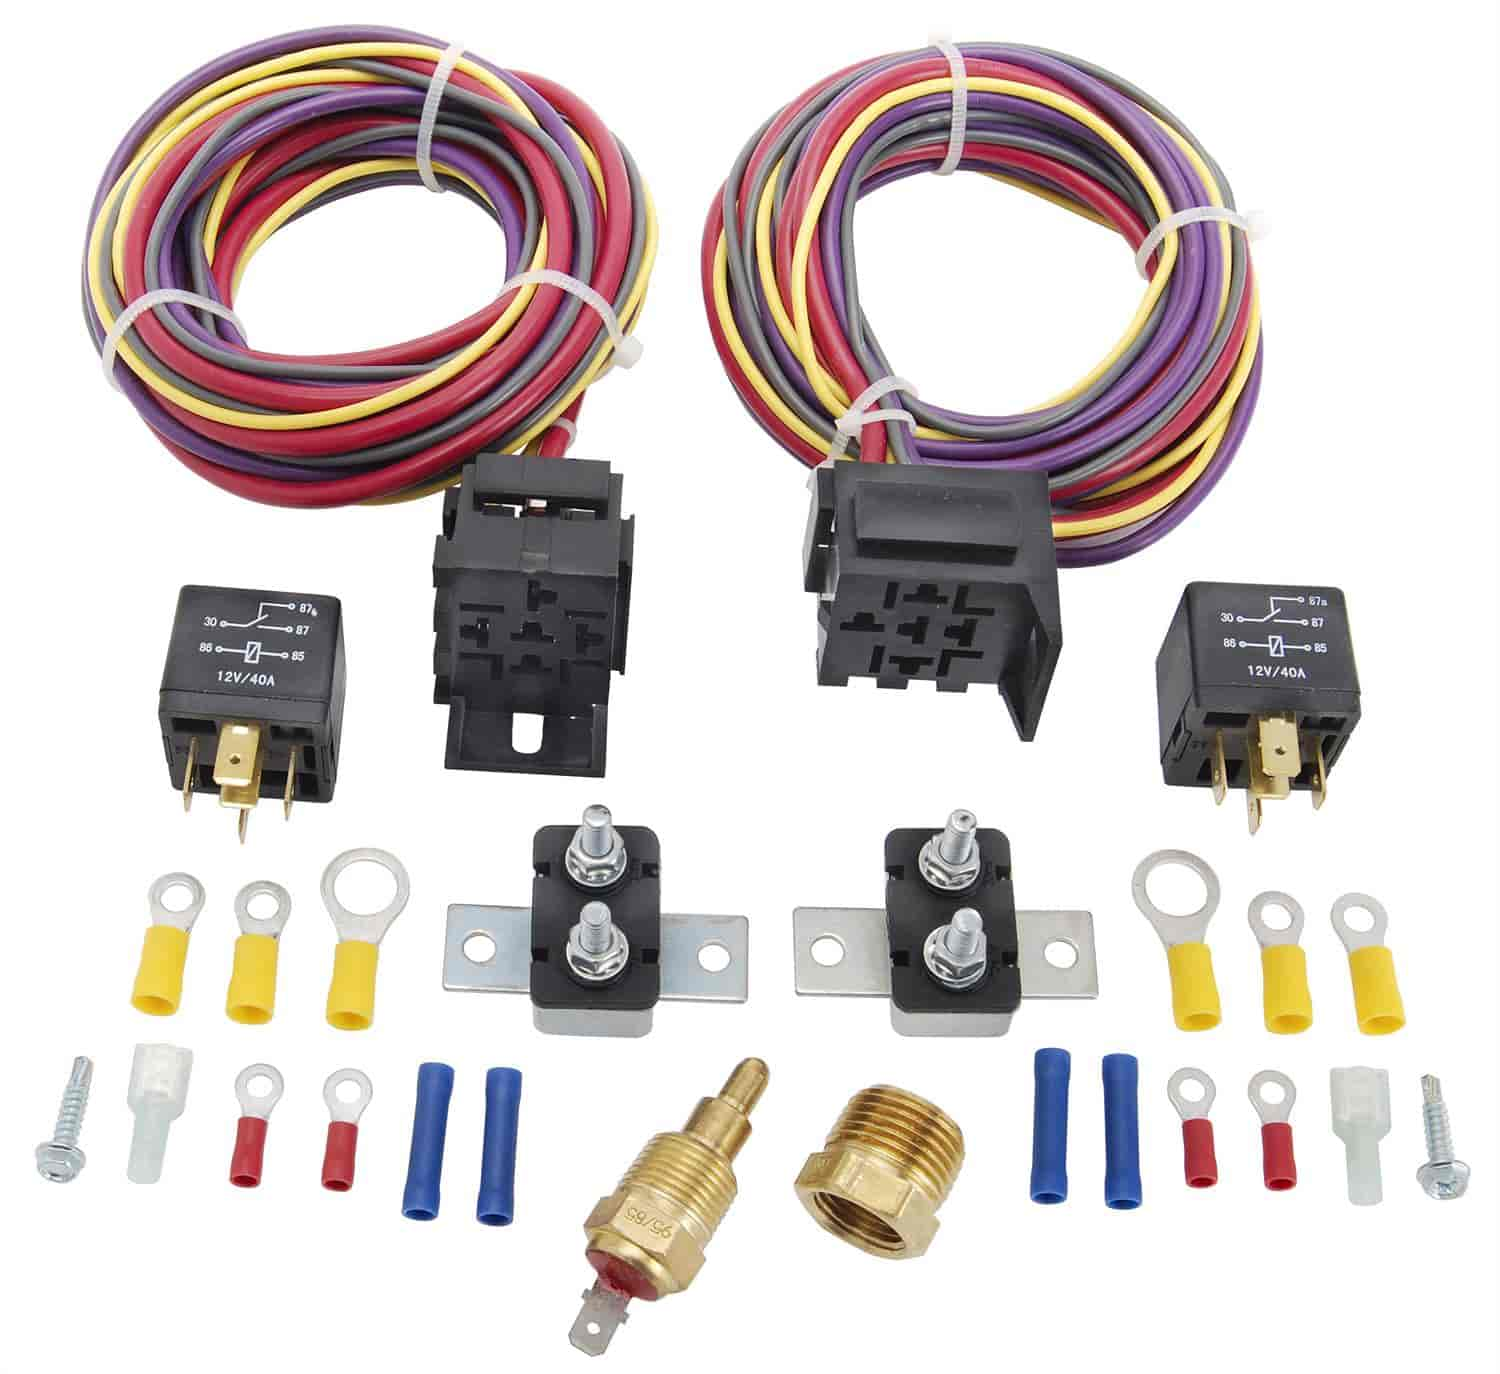 555 10571 jegs performance products 10571 dual fan wiring harness & relay jegs universal wiring harness at fashall.co